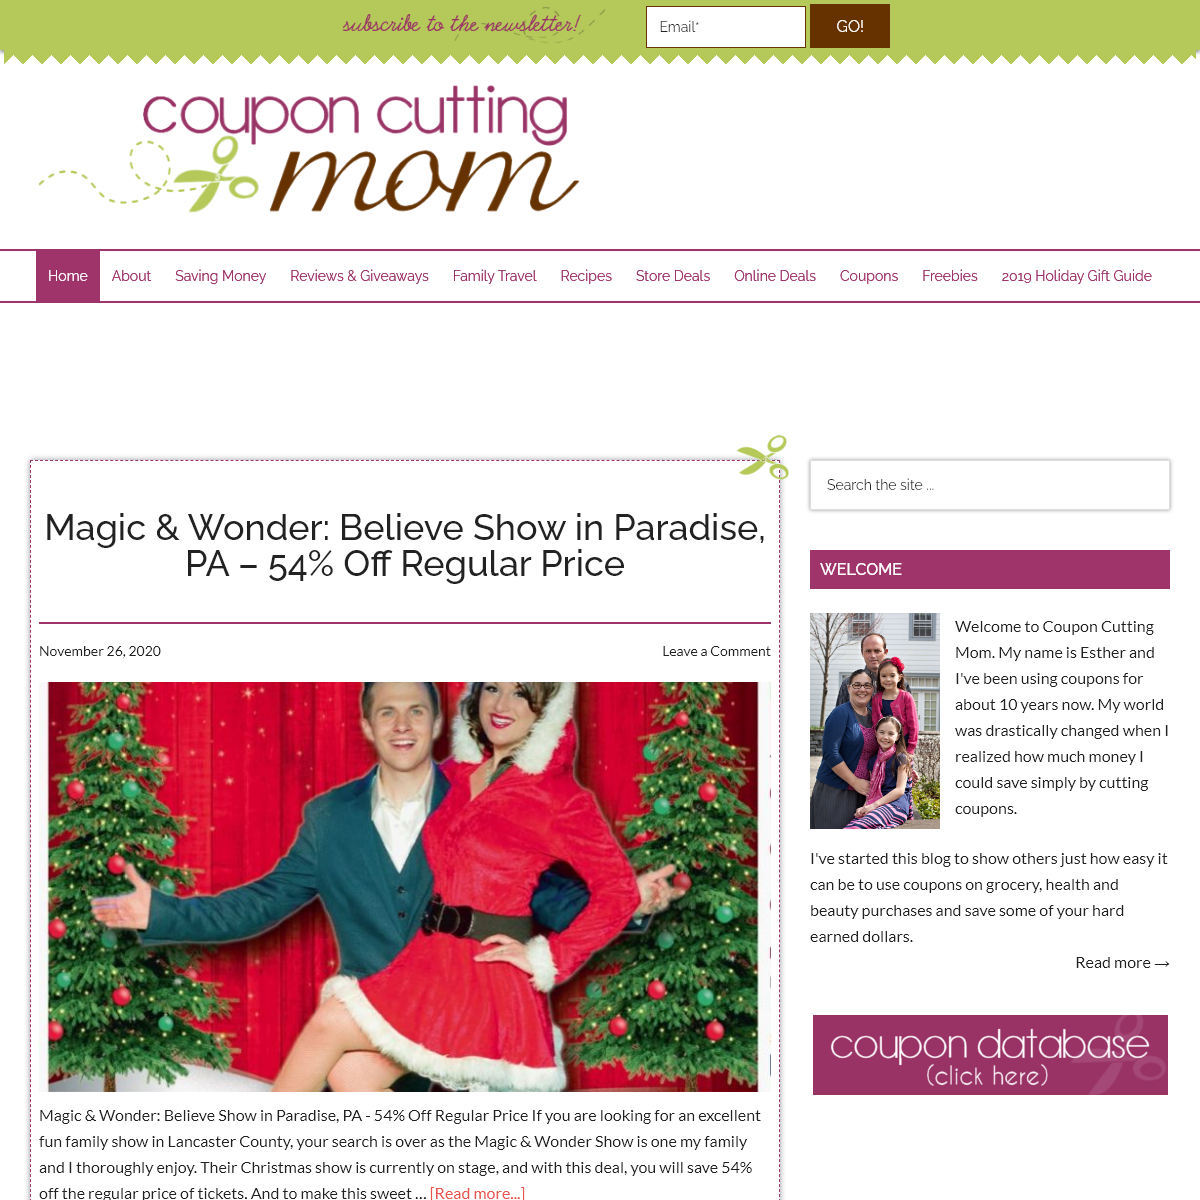 Coupon Cutting Mom - Deals at grocery and drug stores, freebies, coupons, recipes and more!